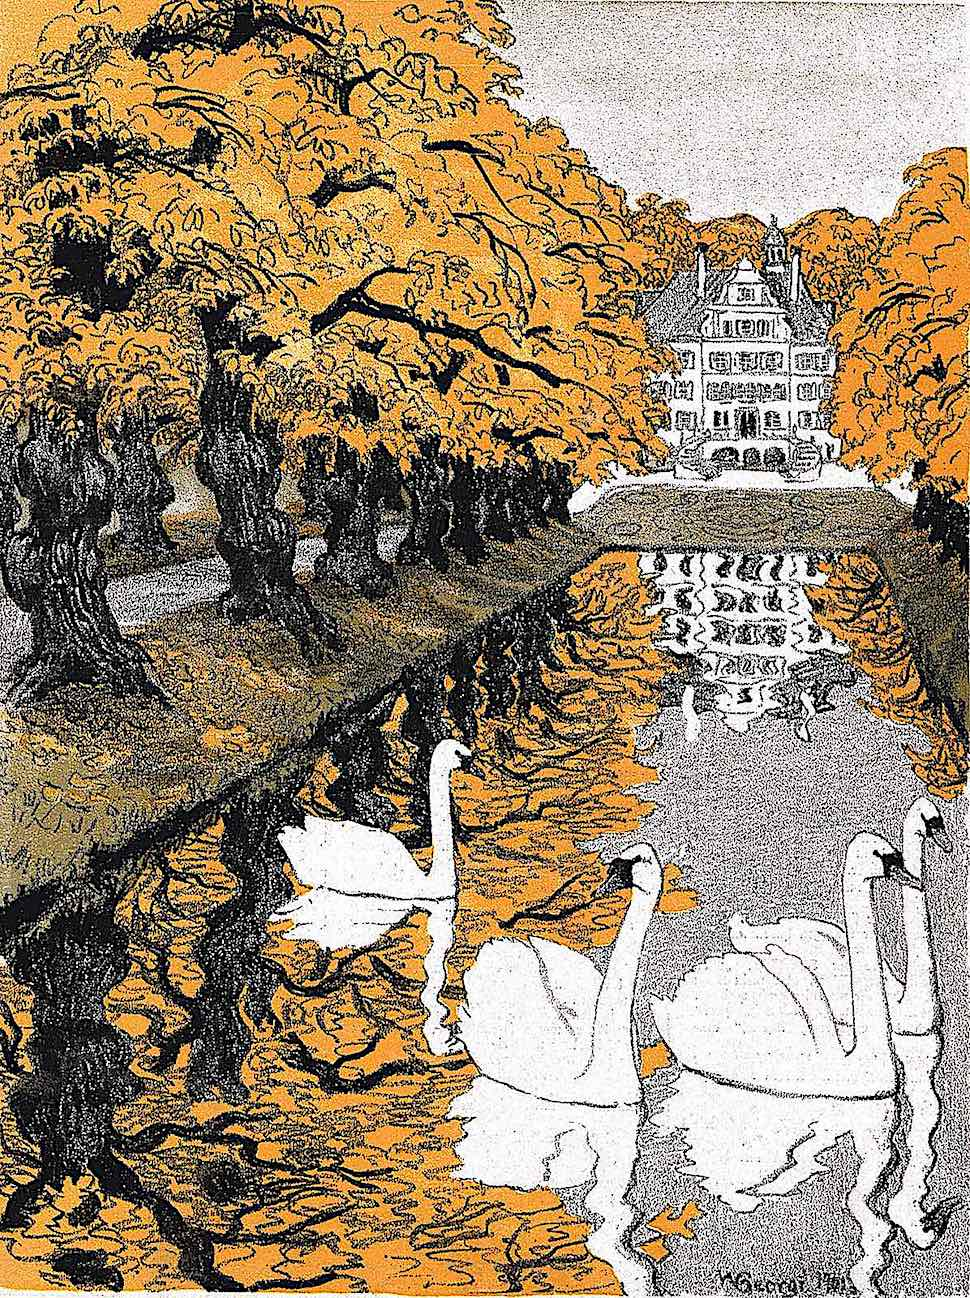 a 1902 illustration of a pond with geese on an estate